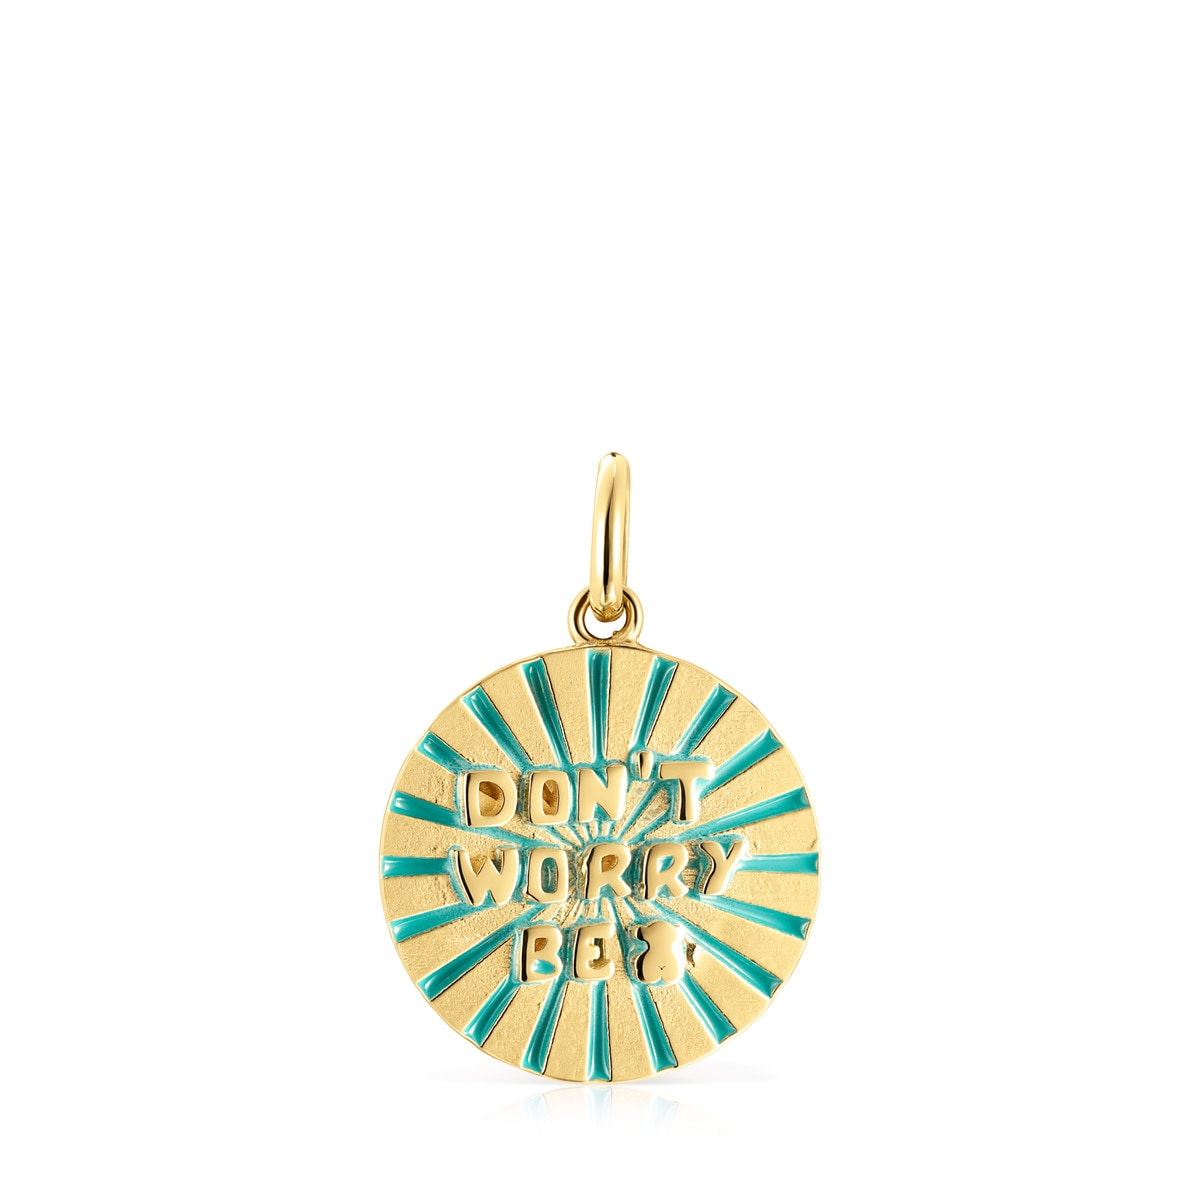 Gold Vermeil with Enamel Medallions Don't Worry Pendant